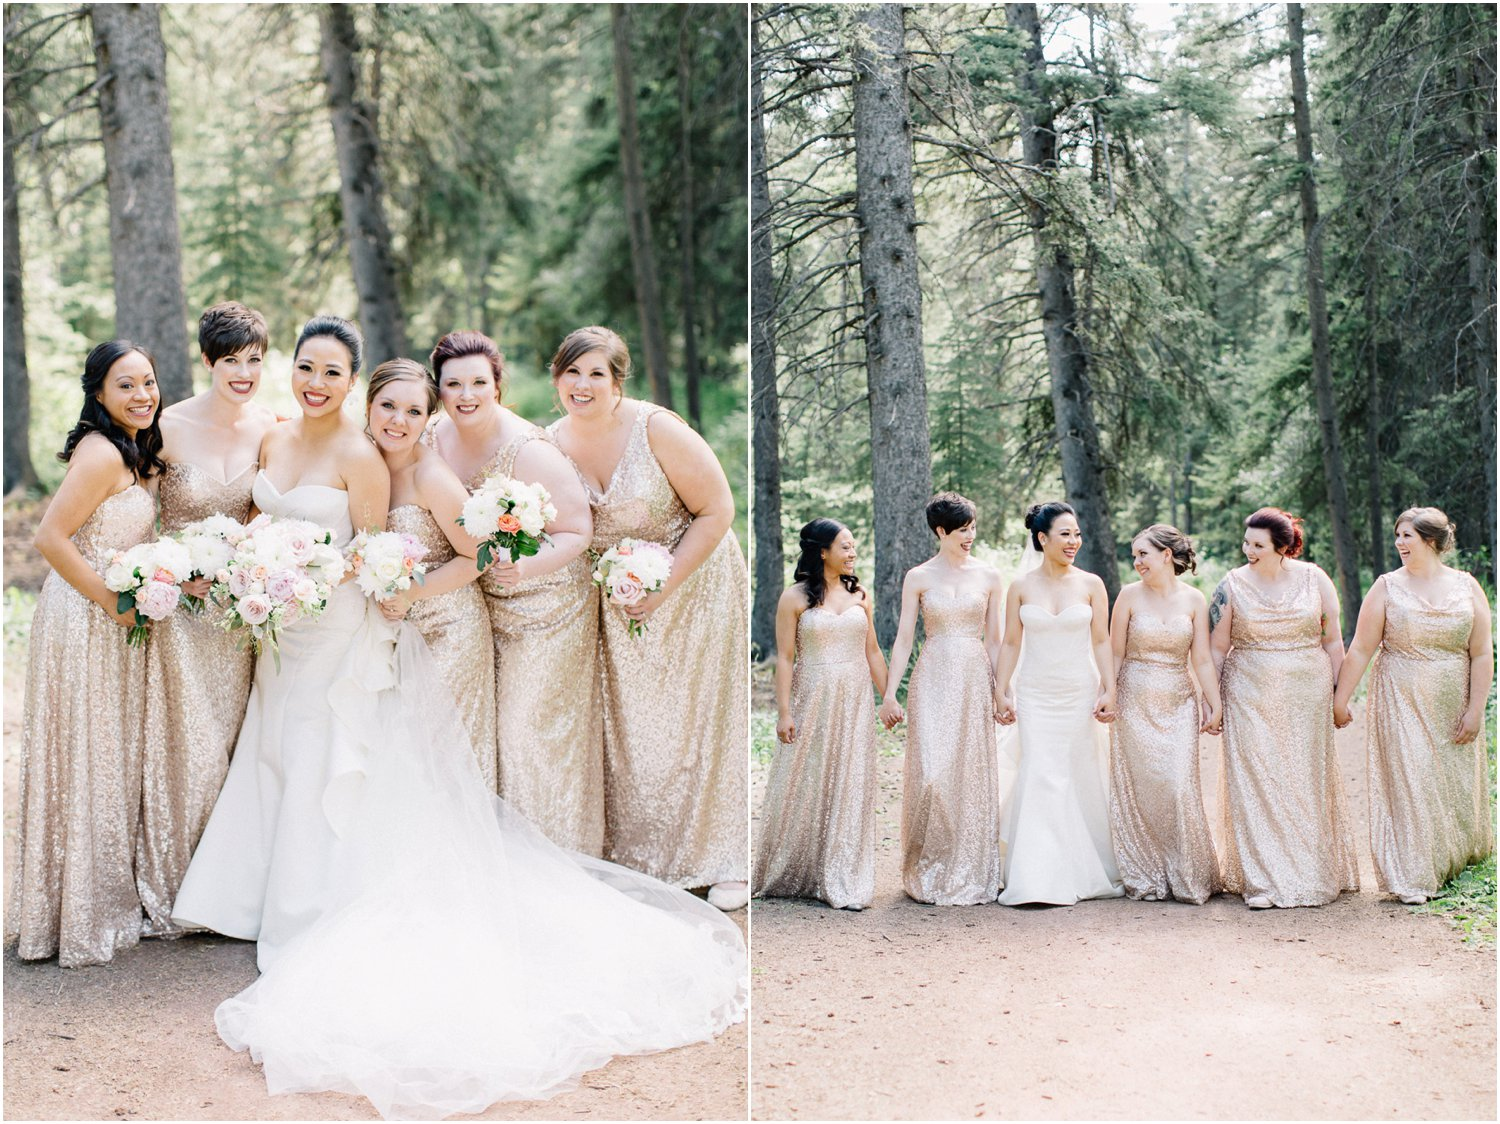 Gold bridesmaids dresses - Calgary Wedding Photographer_4836